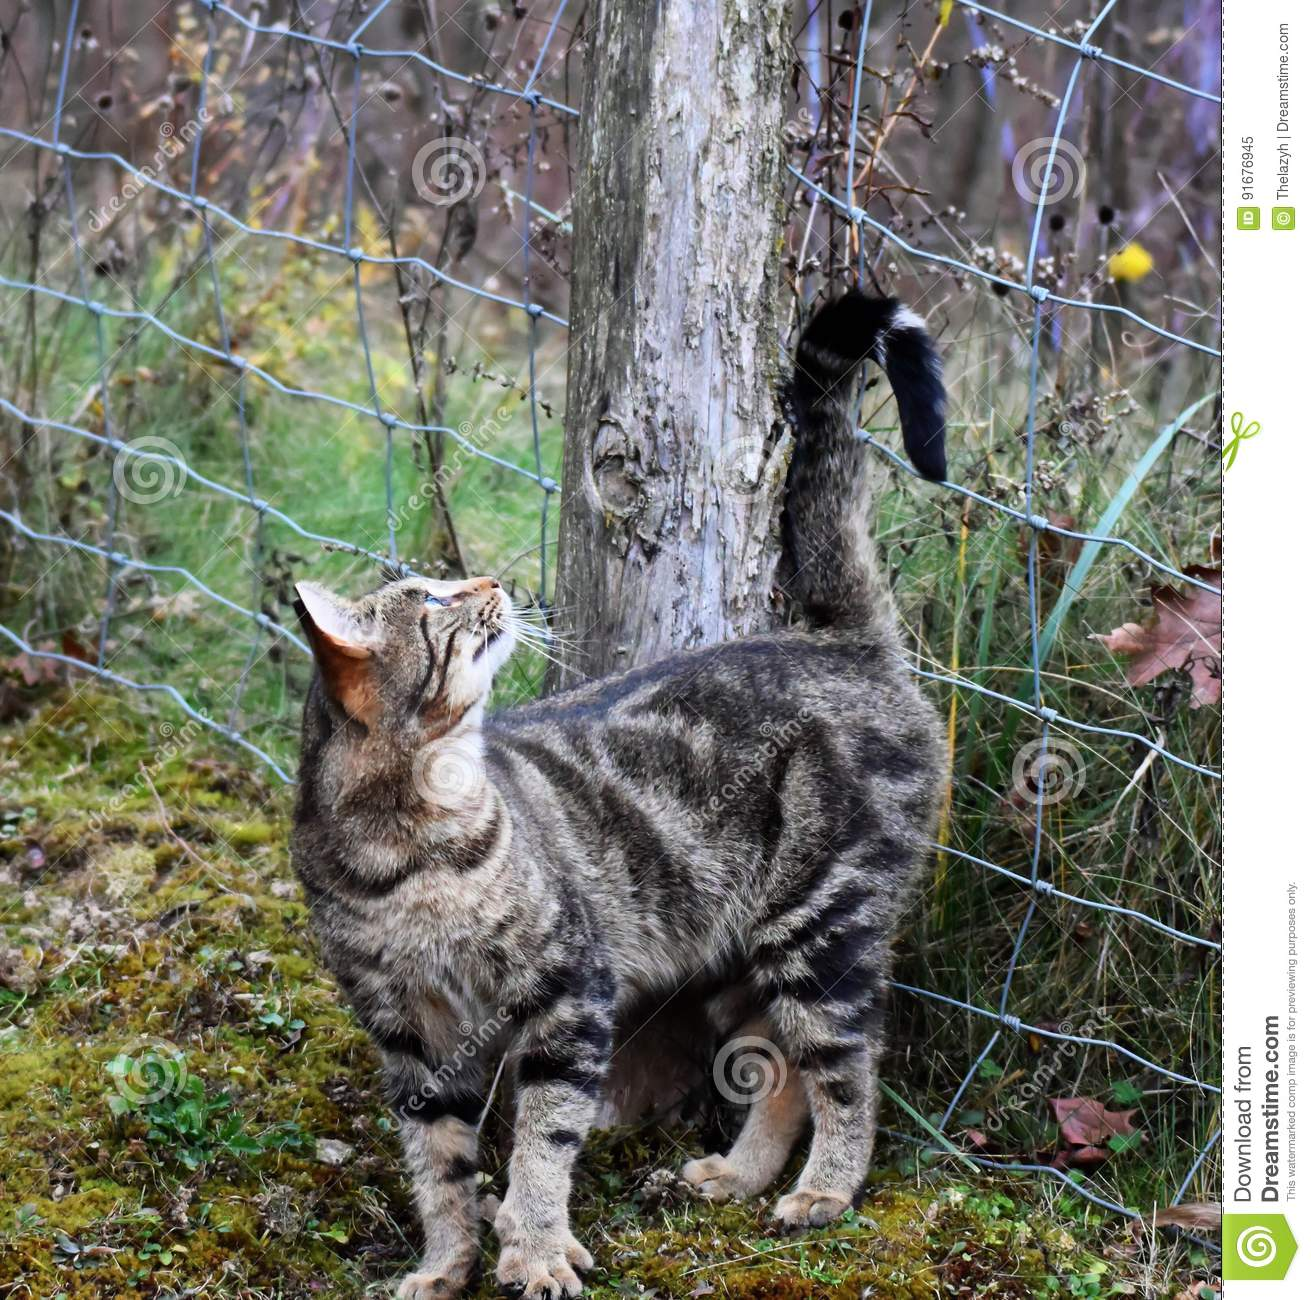 Barn Cat Rubbing On Fence Post Stock Image - Image of tabby, rubbing ...